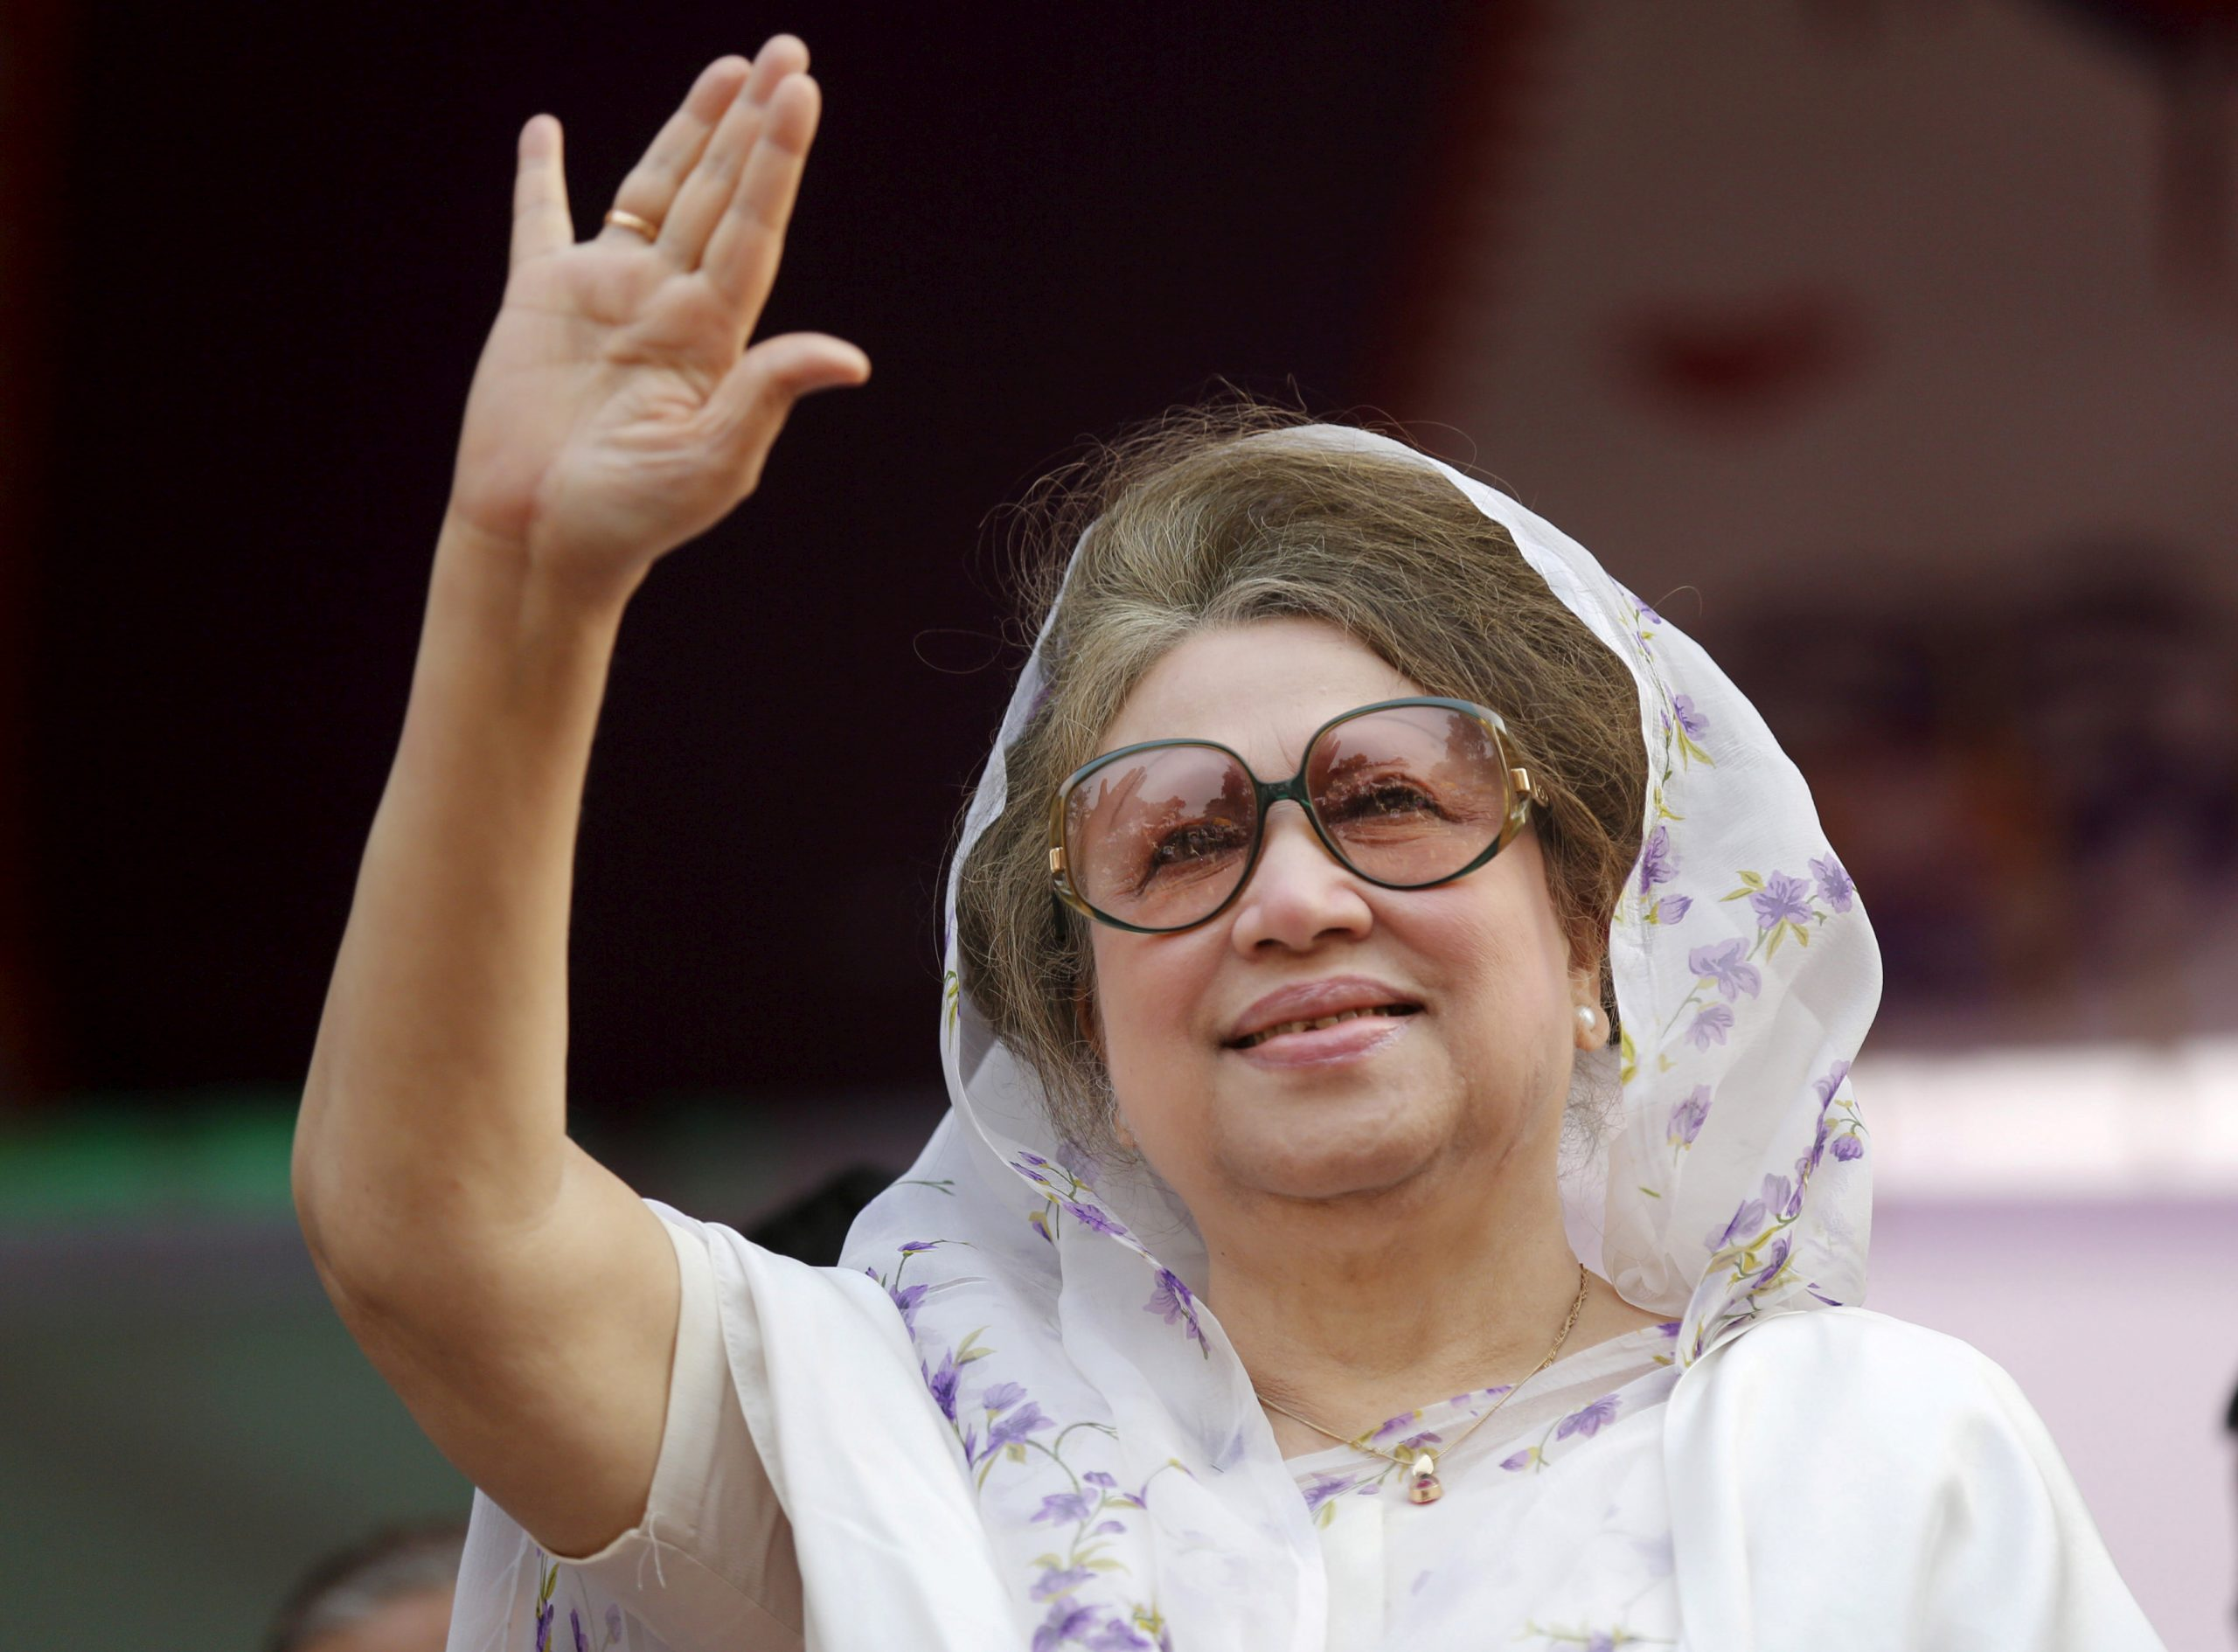 FILE PHOTO: Bangladesh Nationalist Party (BNP) Chairperson Begum Khaleda Zia waves to activists as she arrives for a rally in Dhaka. REUTERS/Andrew Biraj/File Photo